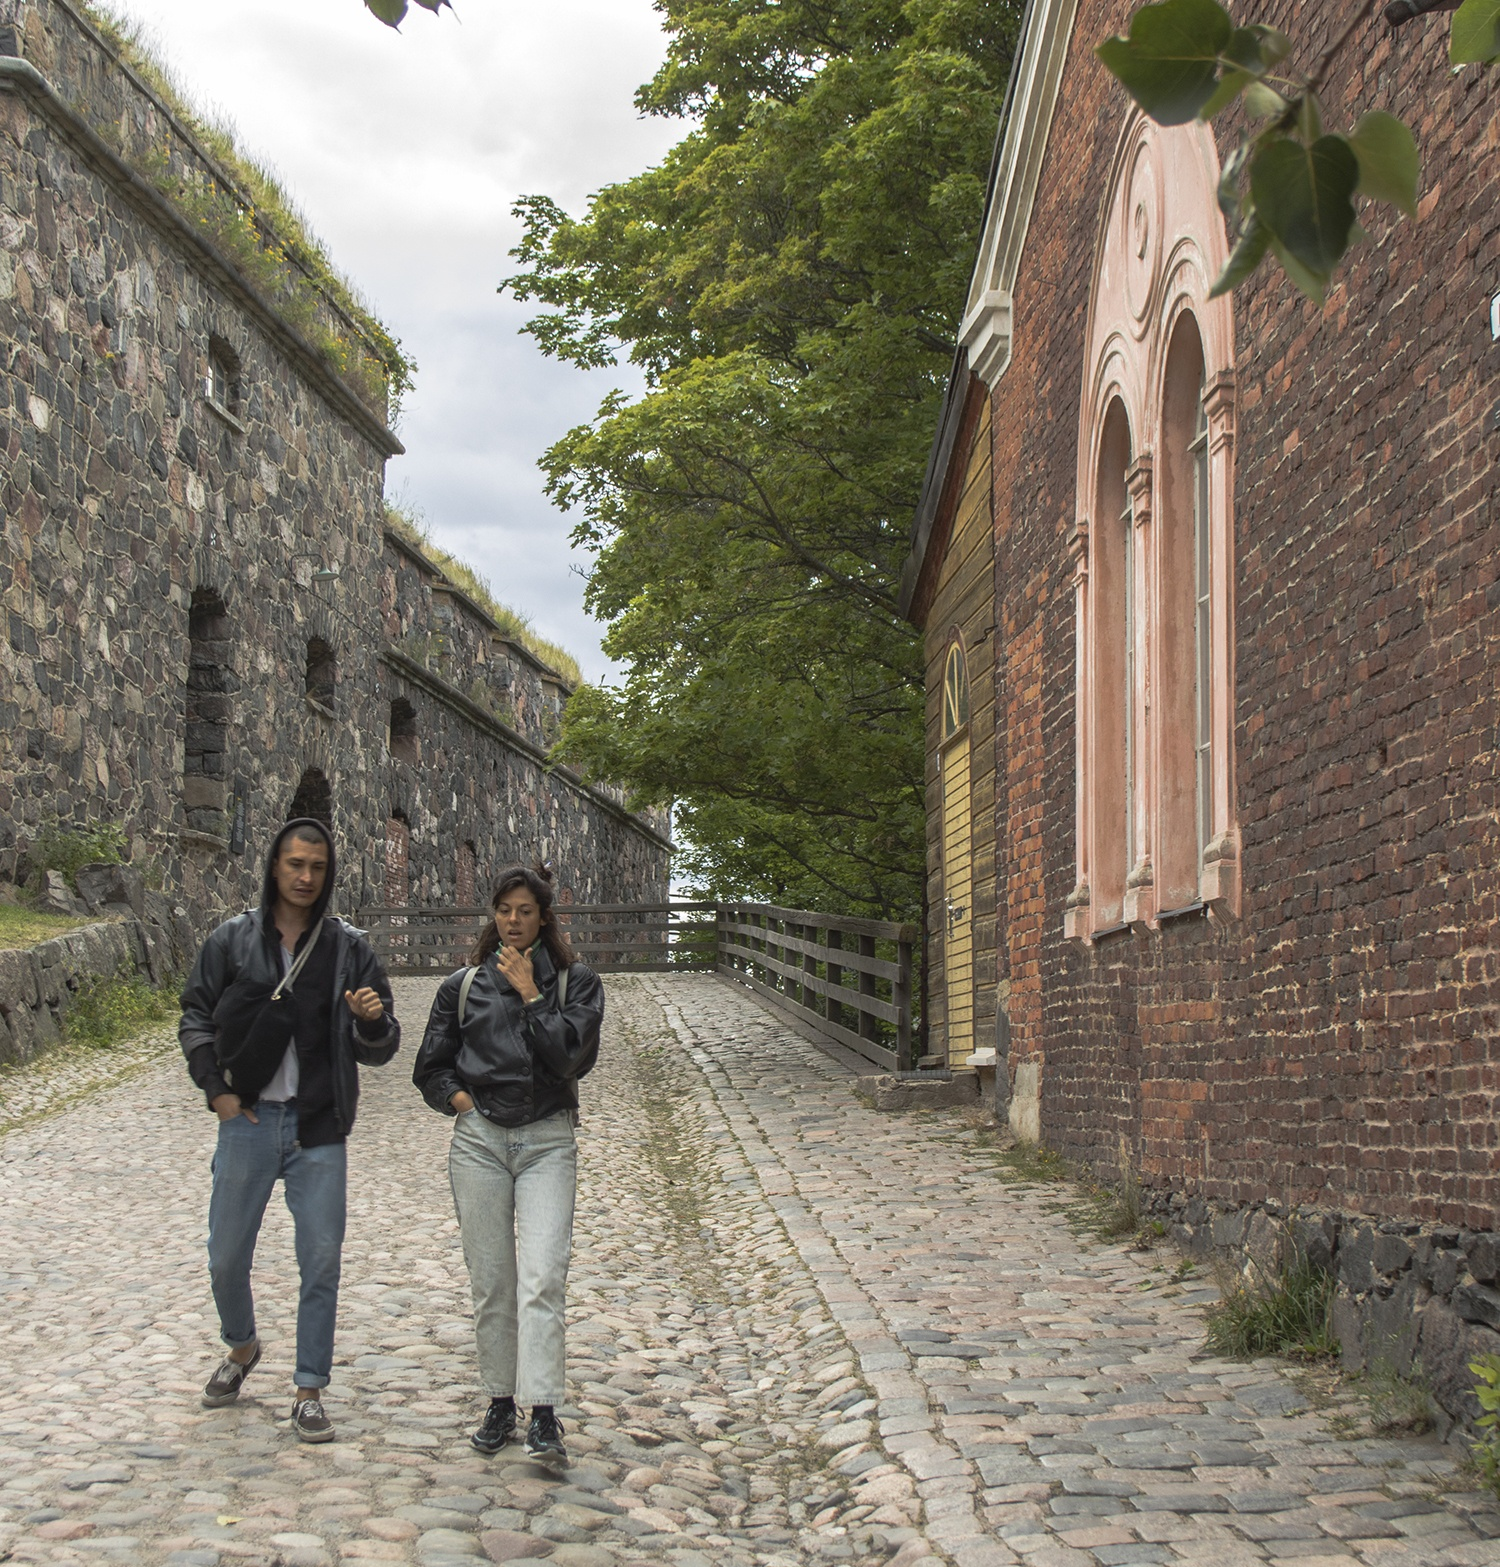 People in Suomenlinna Sea Fortress